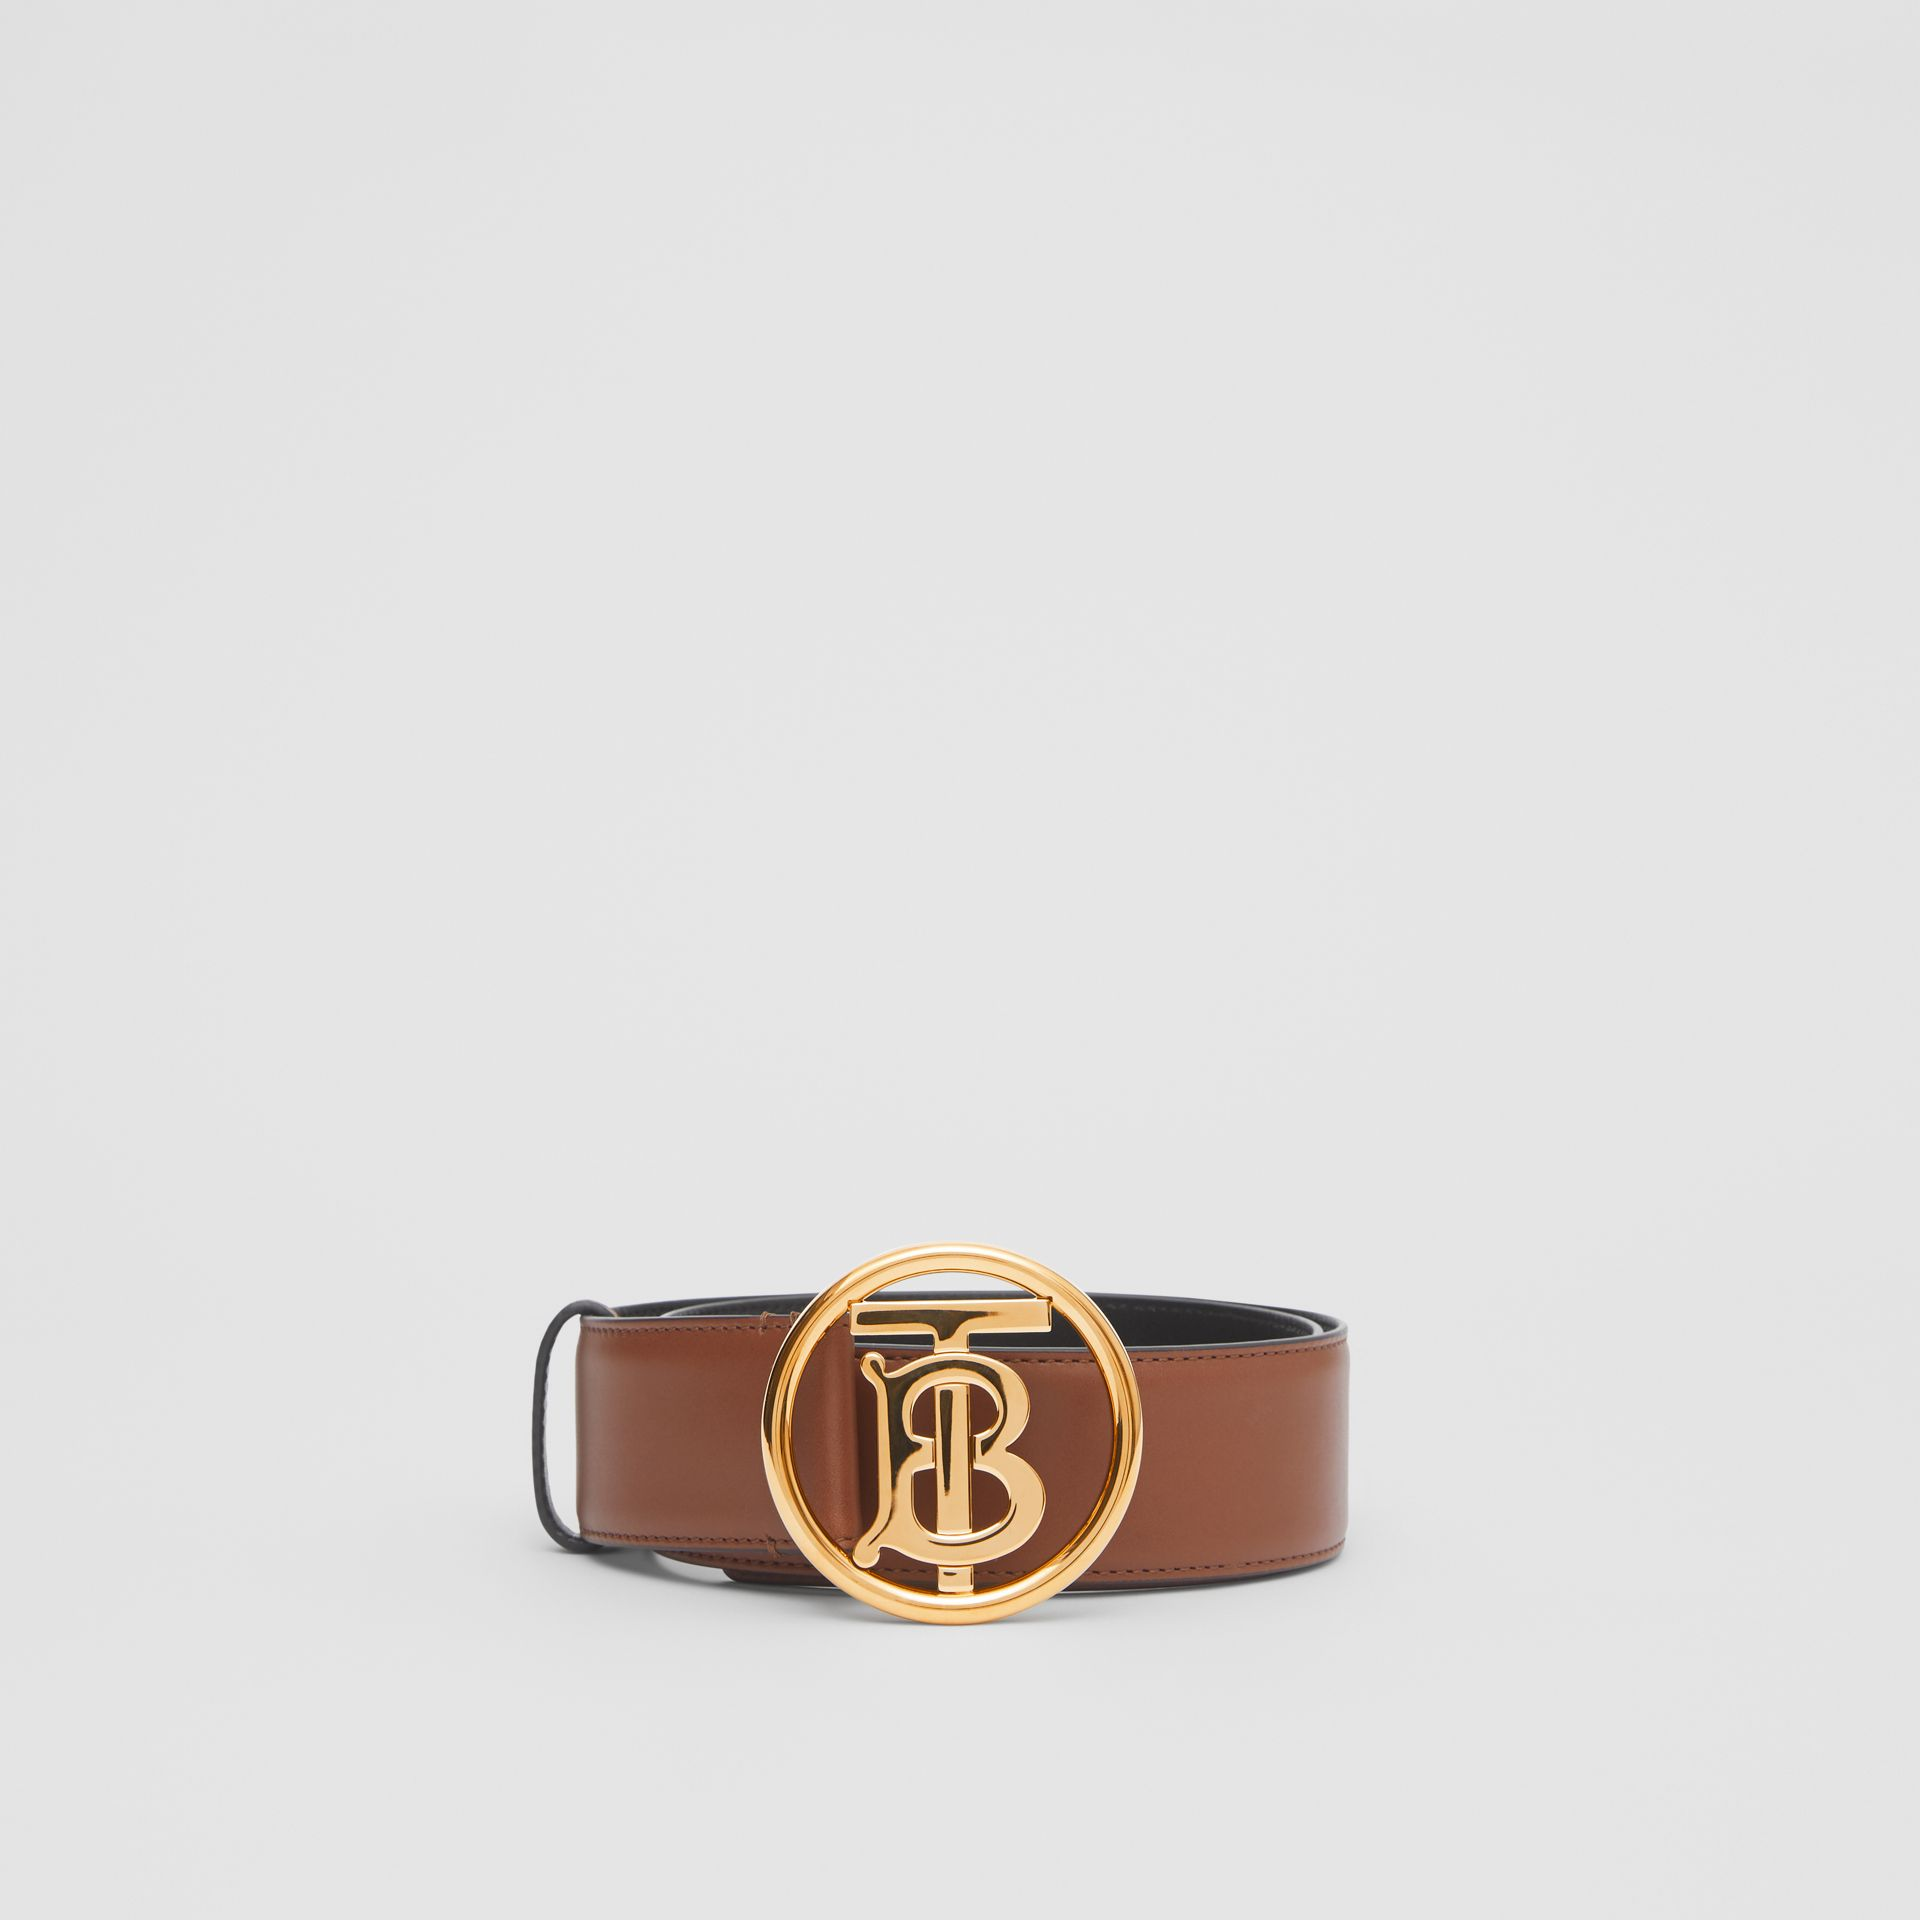 Monogram Motif Leather Belt in Tan/antique Dark Brass - Women | Burberry United Kingdom - gallery image 2